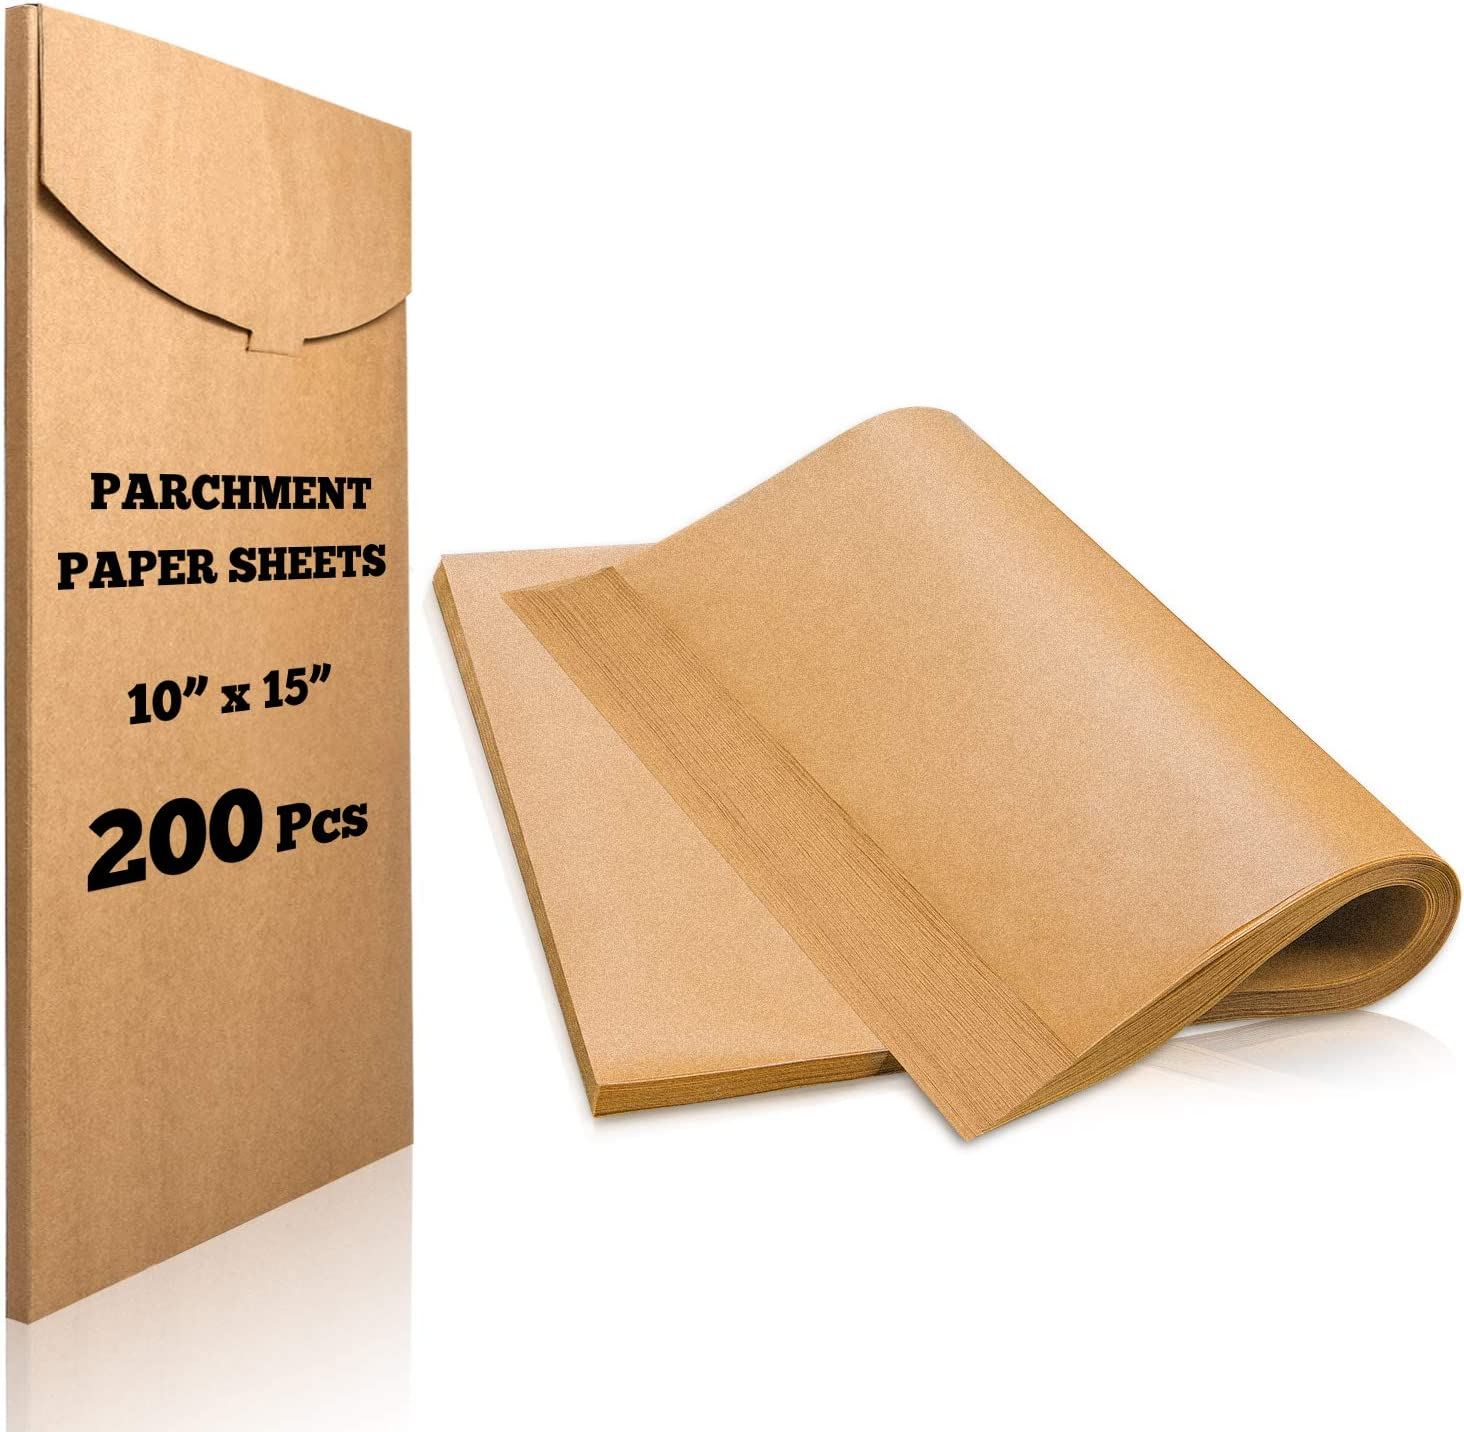 Hiware 200 Pieces Parchment Paper Sheets 10 x 15 Inch, Precut Non-Stick Parchment Sheets for Baking, Cooking, Grilling, Air Fryer and Steaming - Unbleached, Fit for Jelly Roll Pans